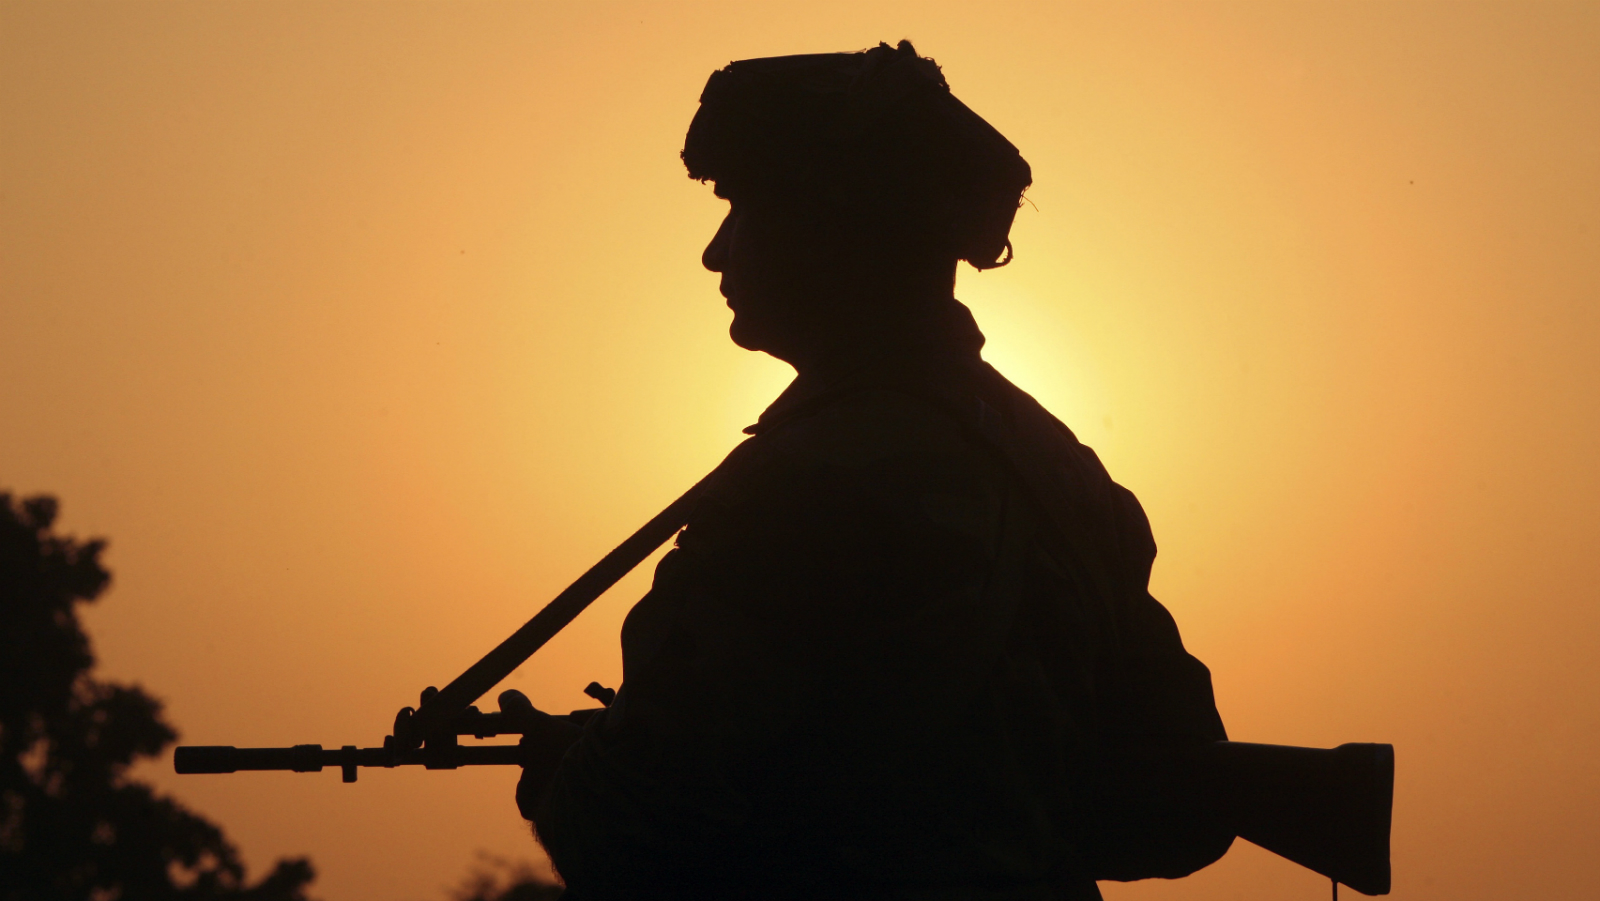 An Indian army soldier keeps vigil near the site of a gunbattle with suspected militants at Pindi Khattar village in Arnia near the border with Pakistan November 27, 2014. Gunmen wearing army uniforms on Thursday attacked an Indian army base near the border with Pakistan, leaving ten people dead in the worst militant violence in the disputed state of Kashmir in more than a year. REUTERS/Mukesh Gupta (INDIAN-ADMINISTERED KASHMIR - Tags: POLITICS CIVIL UNREST)